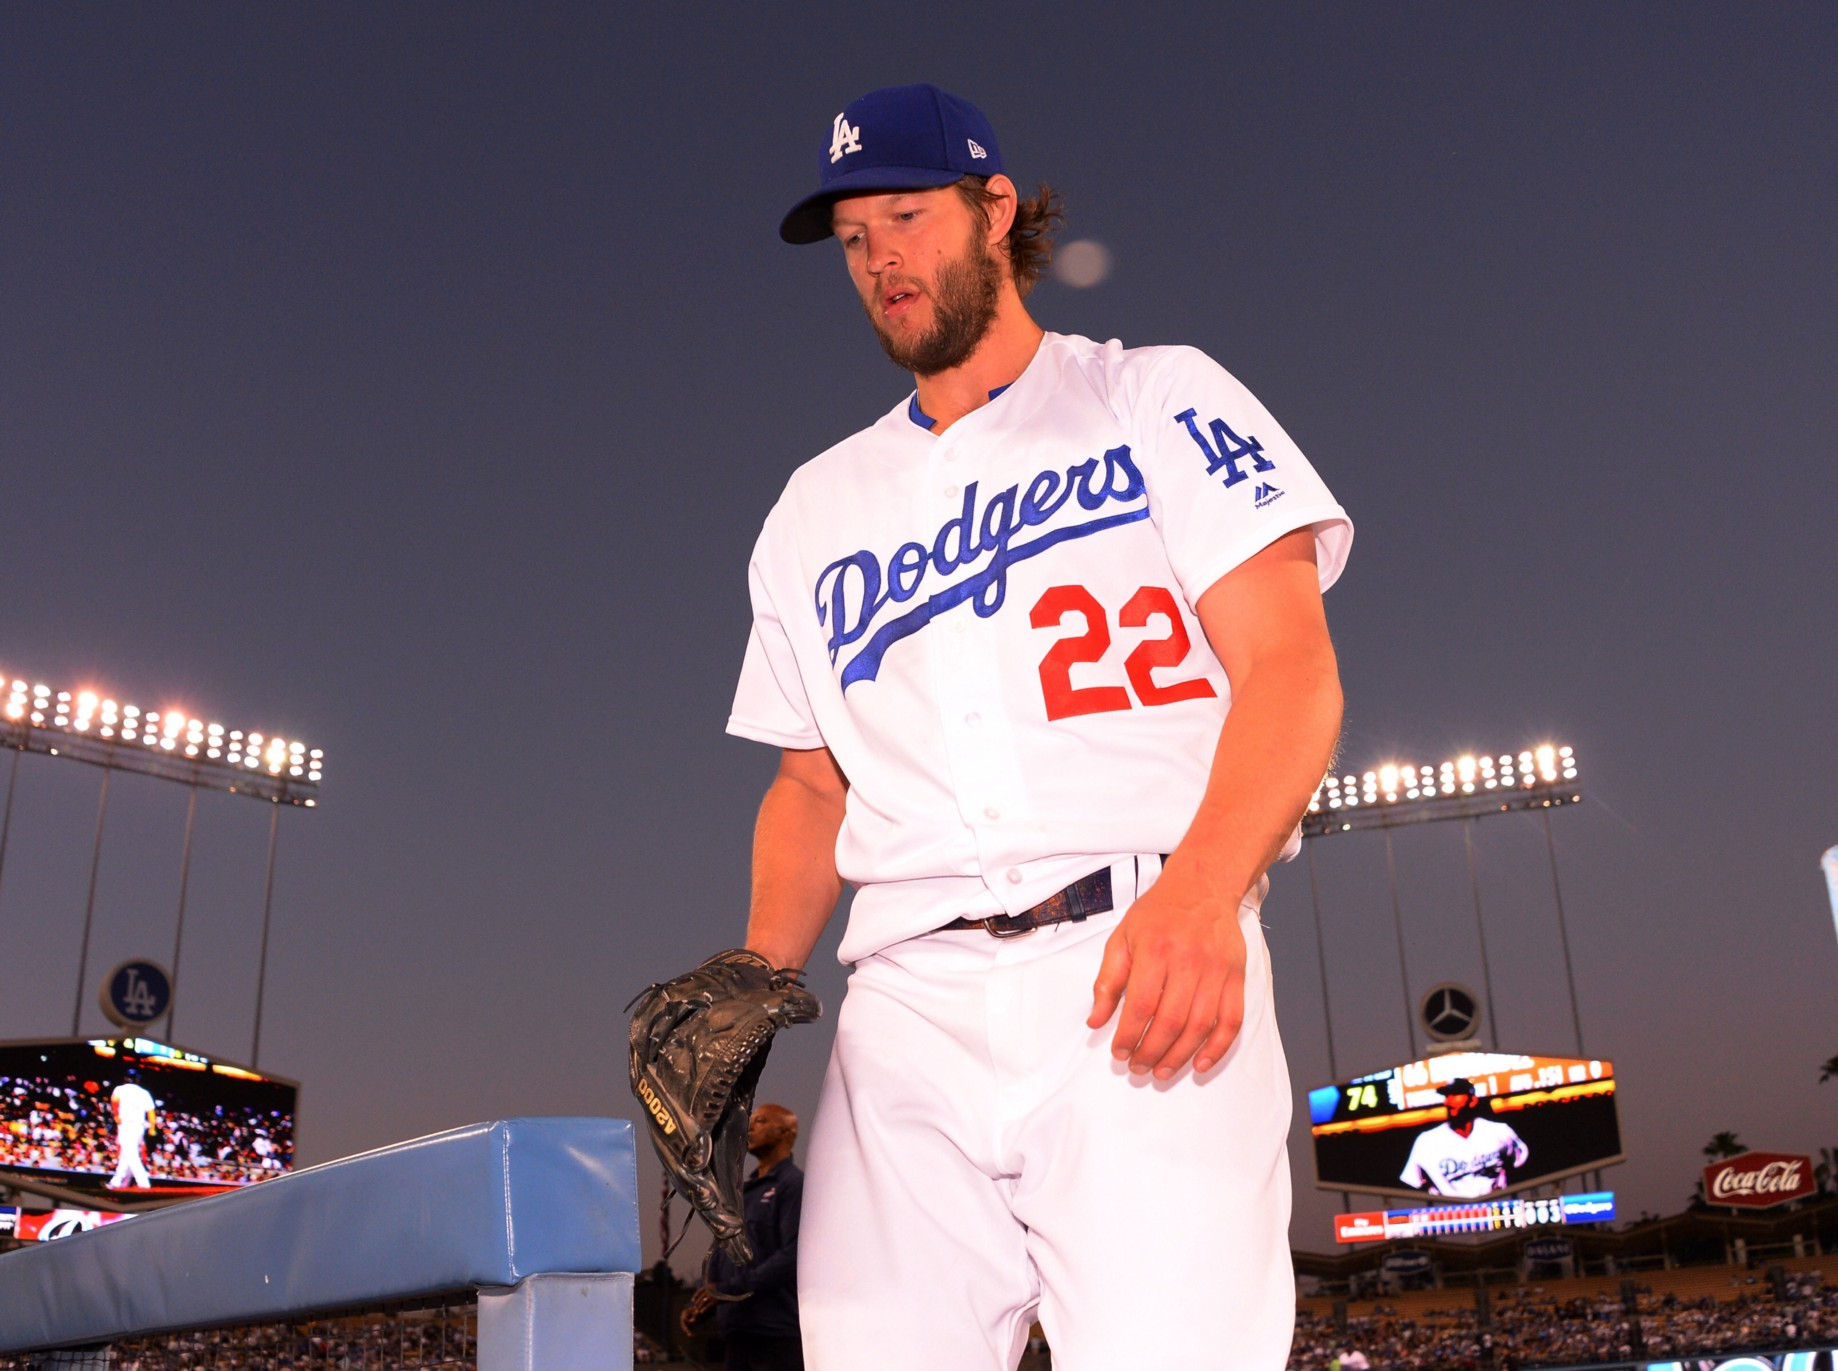 e7baee5d Three Dodgers in top 20 of most popular MLB jerseys